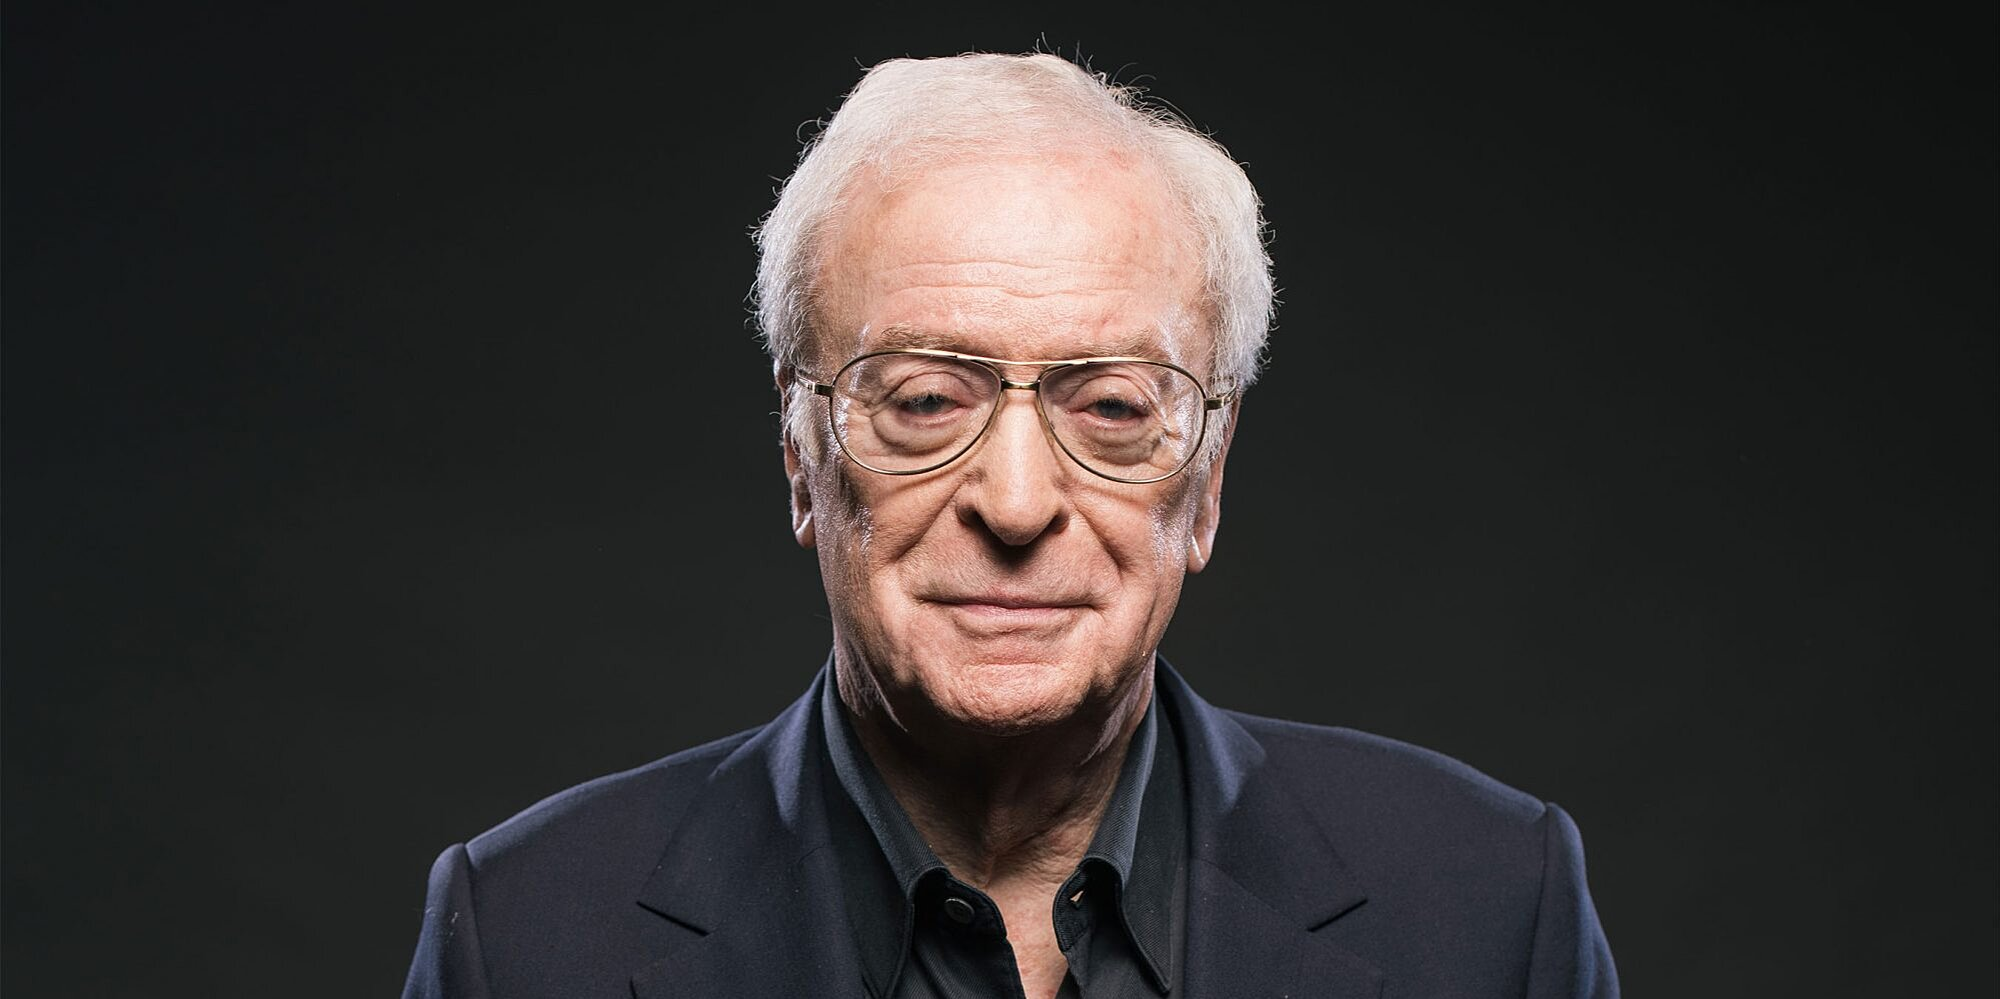 Michael Caine says he's retiring from acting, 2021's 'Best Sellers' will be his final film